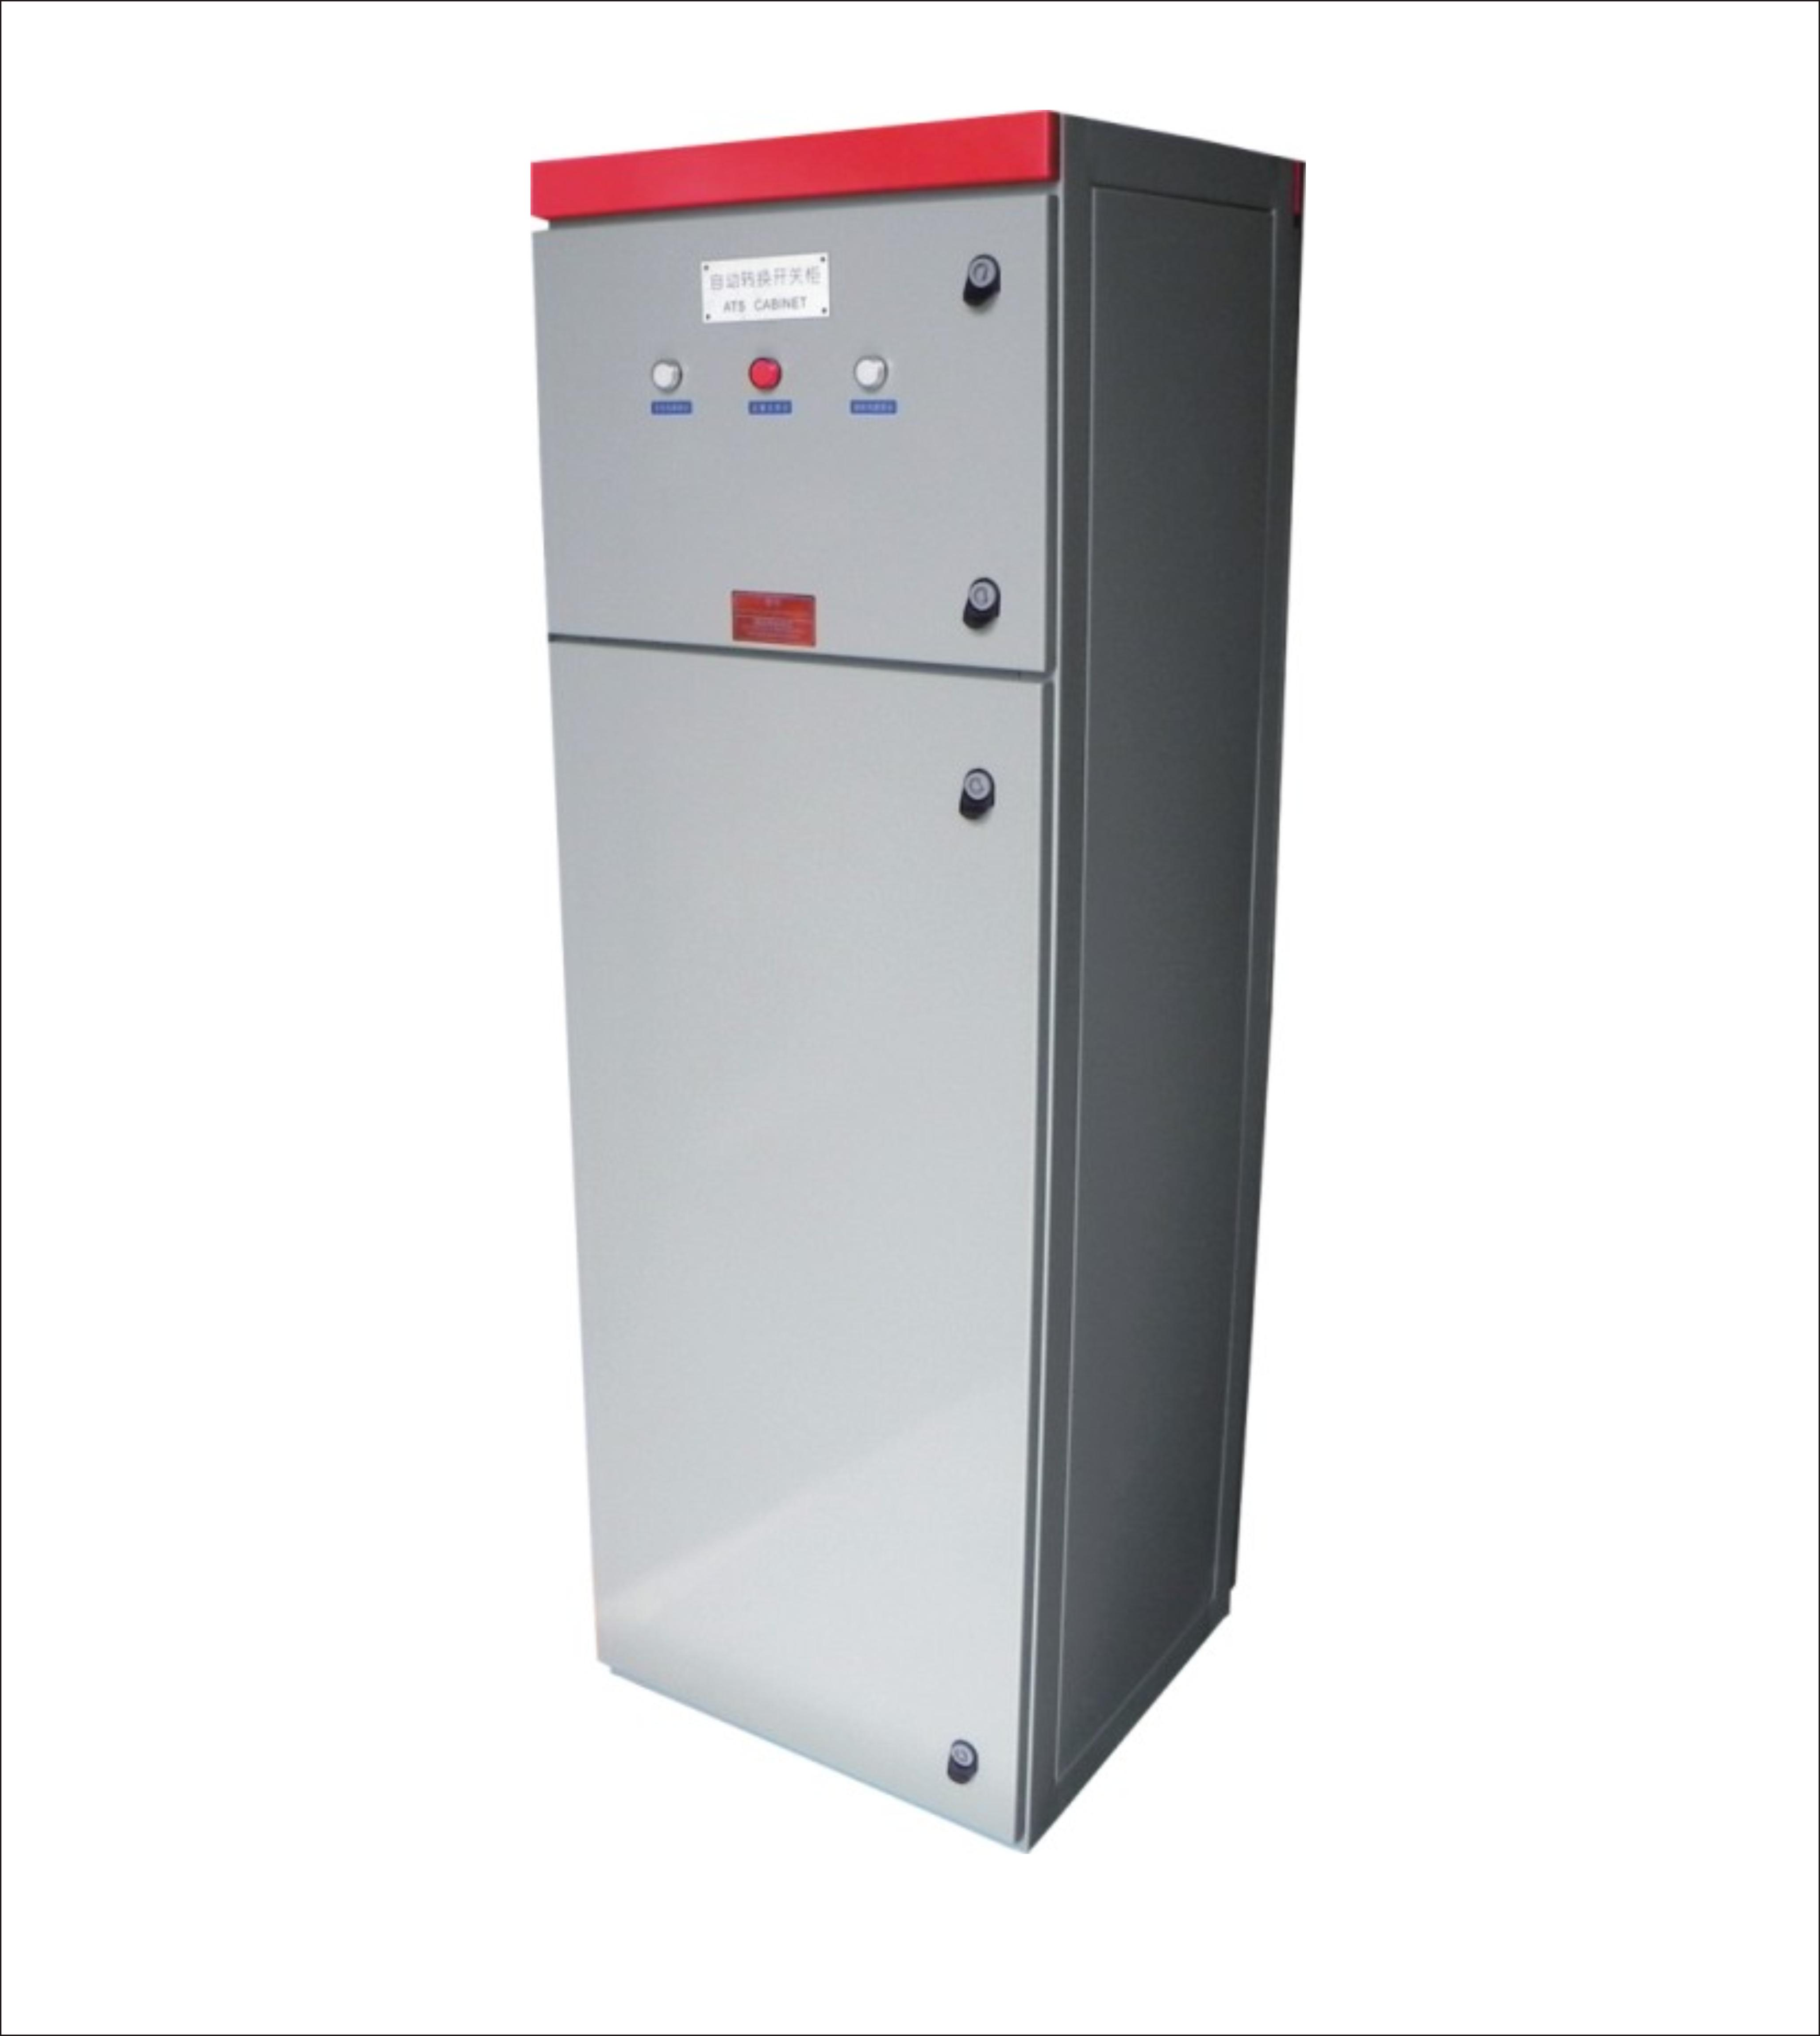 Dual source automatic transfer - ATS cabinet